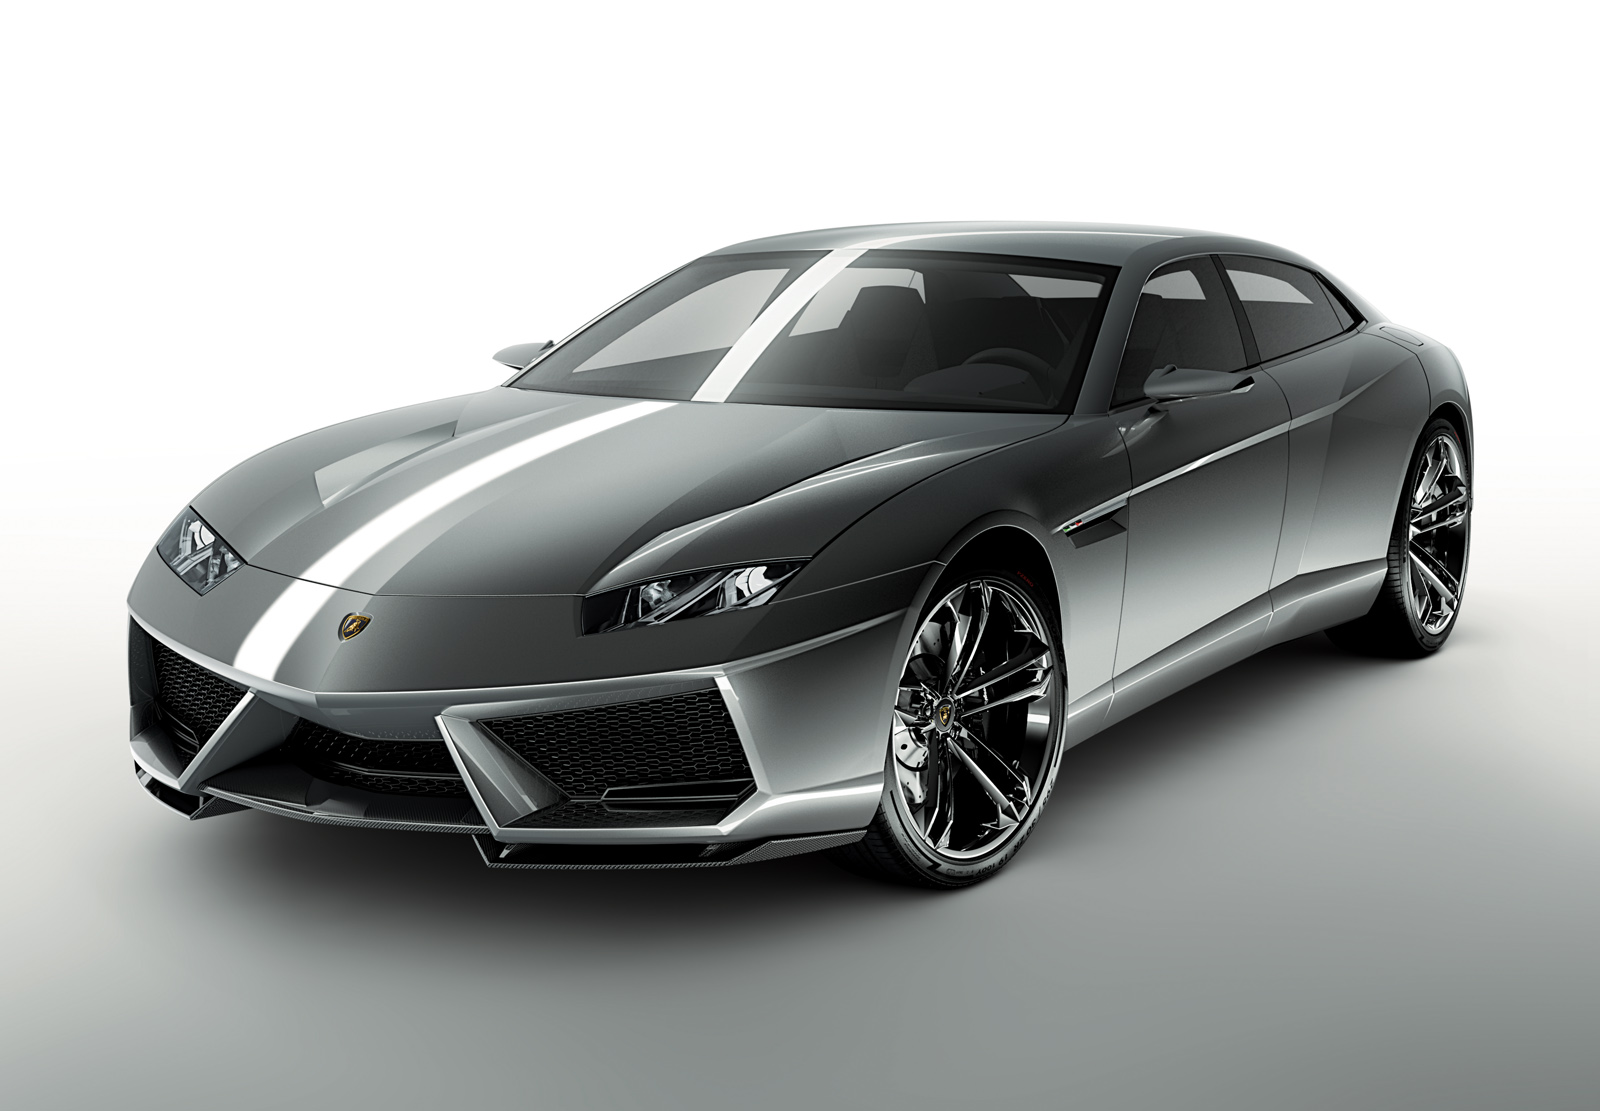 Car New 2011: Lamborghini